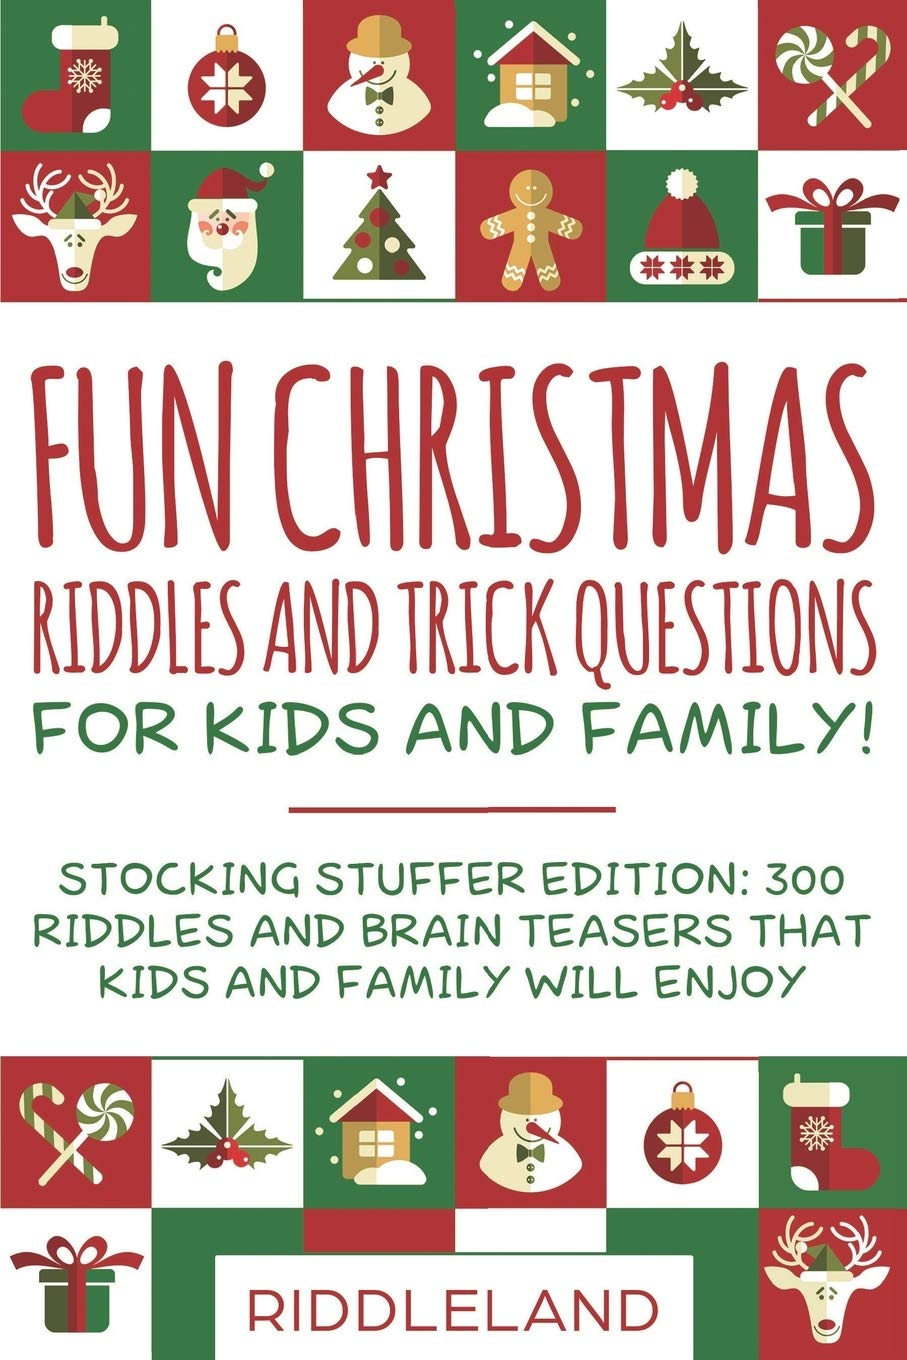 Fun Christmas Riddles And Trick Questions For Kids And Family Stocking Stuffer Edition 300 Riddles And Brain Teasers That Kids And Family Will Enjoy Ages 6 8 7 9 8 12 Riddleland 9781696468794 Amazon Com Books